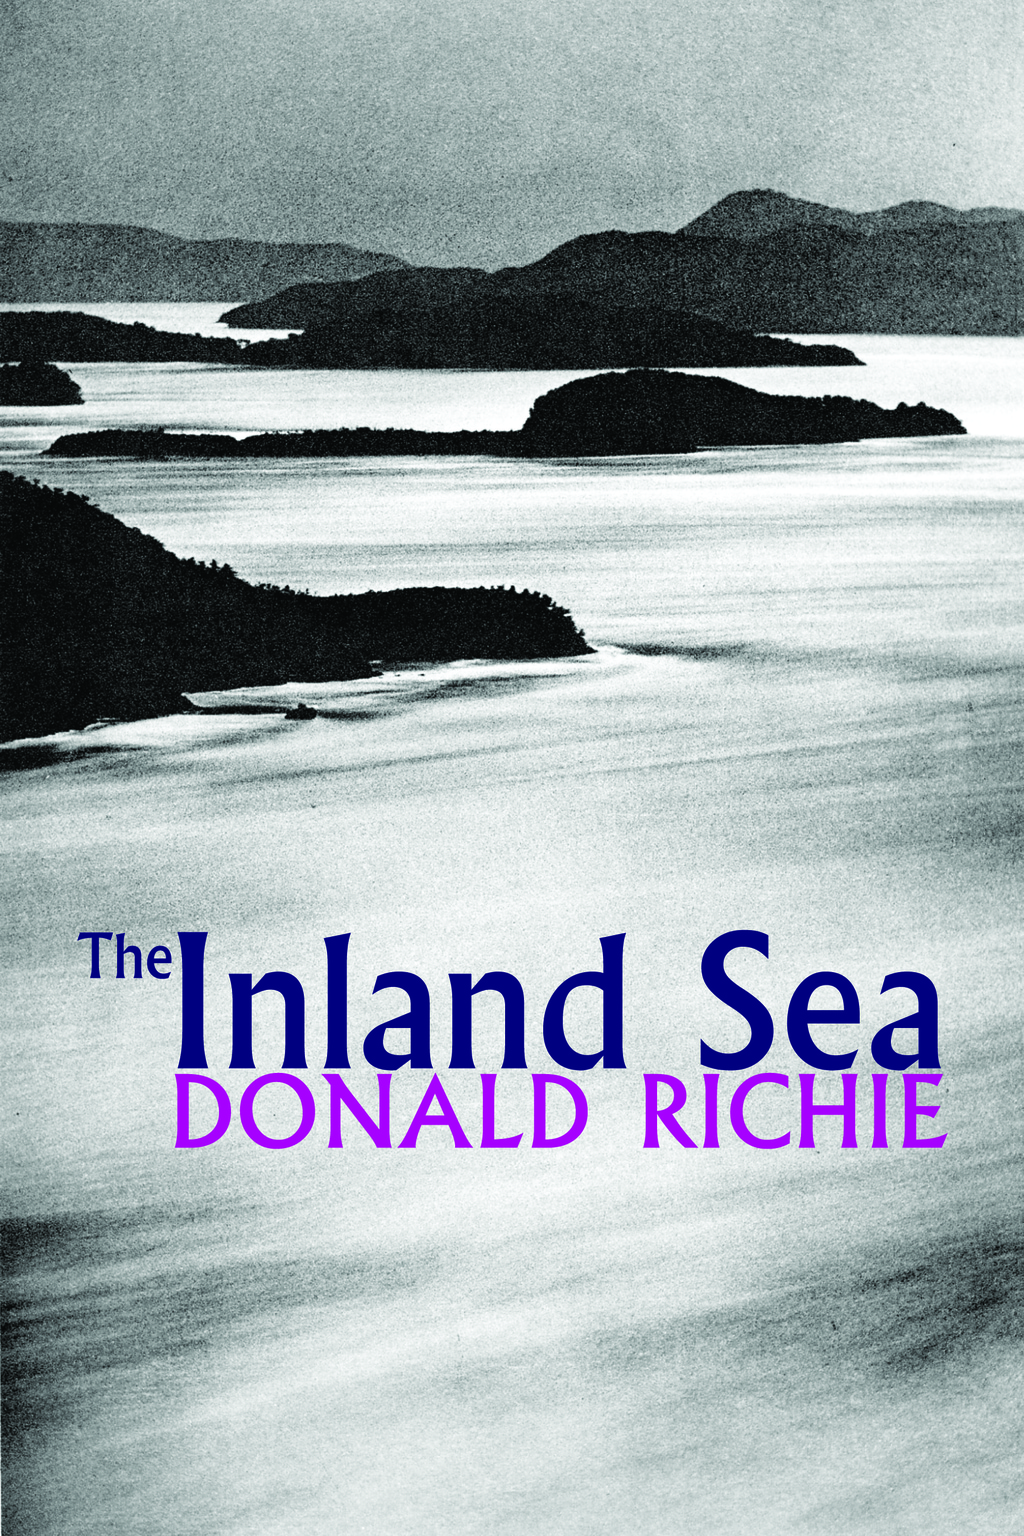 The Inland Sea Donald Richie